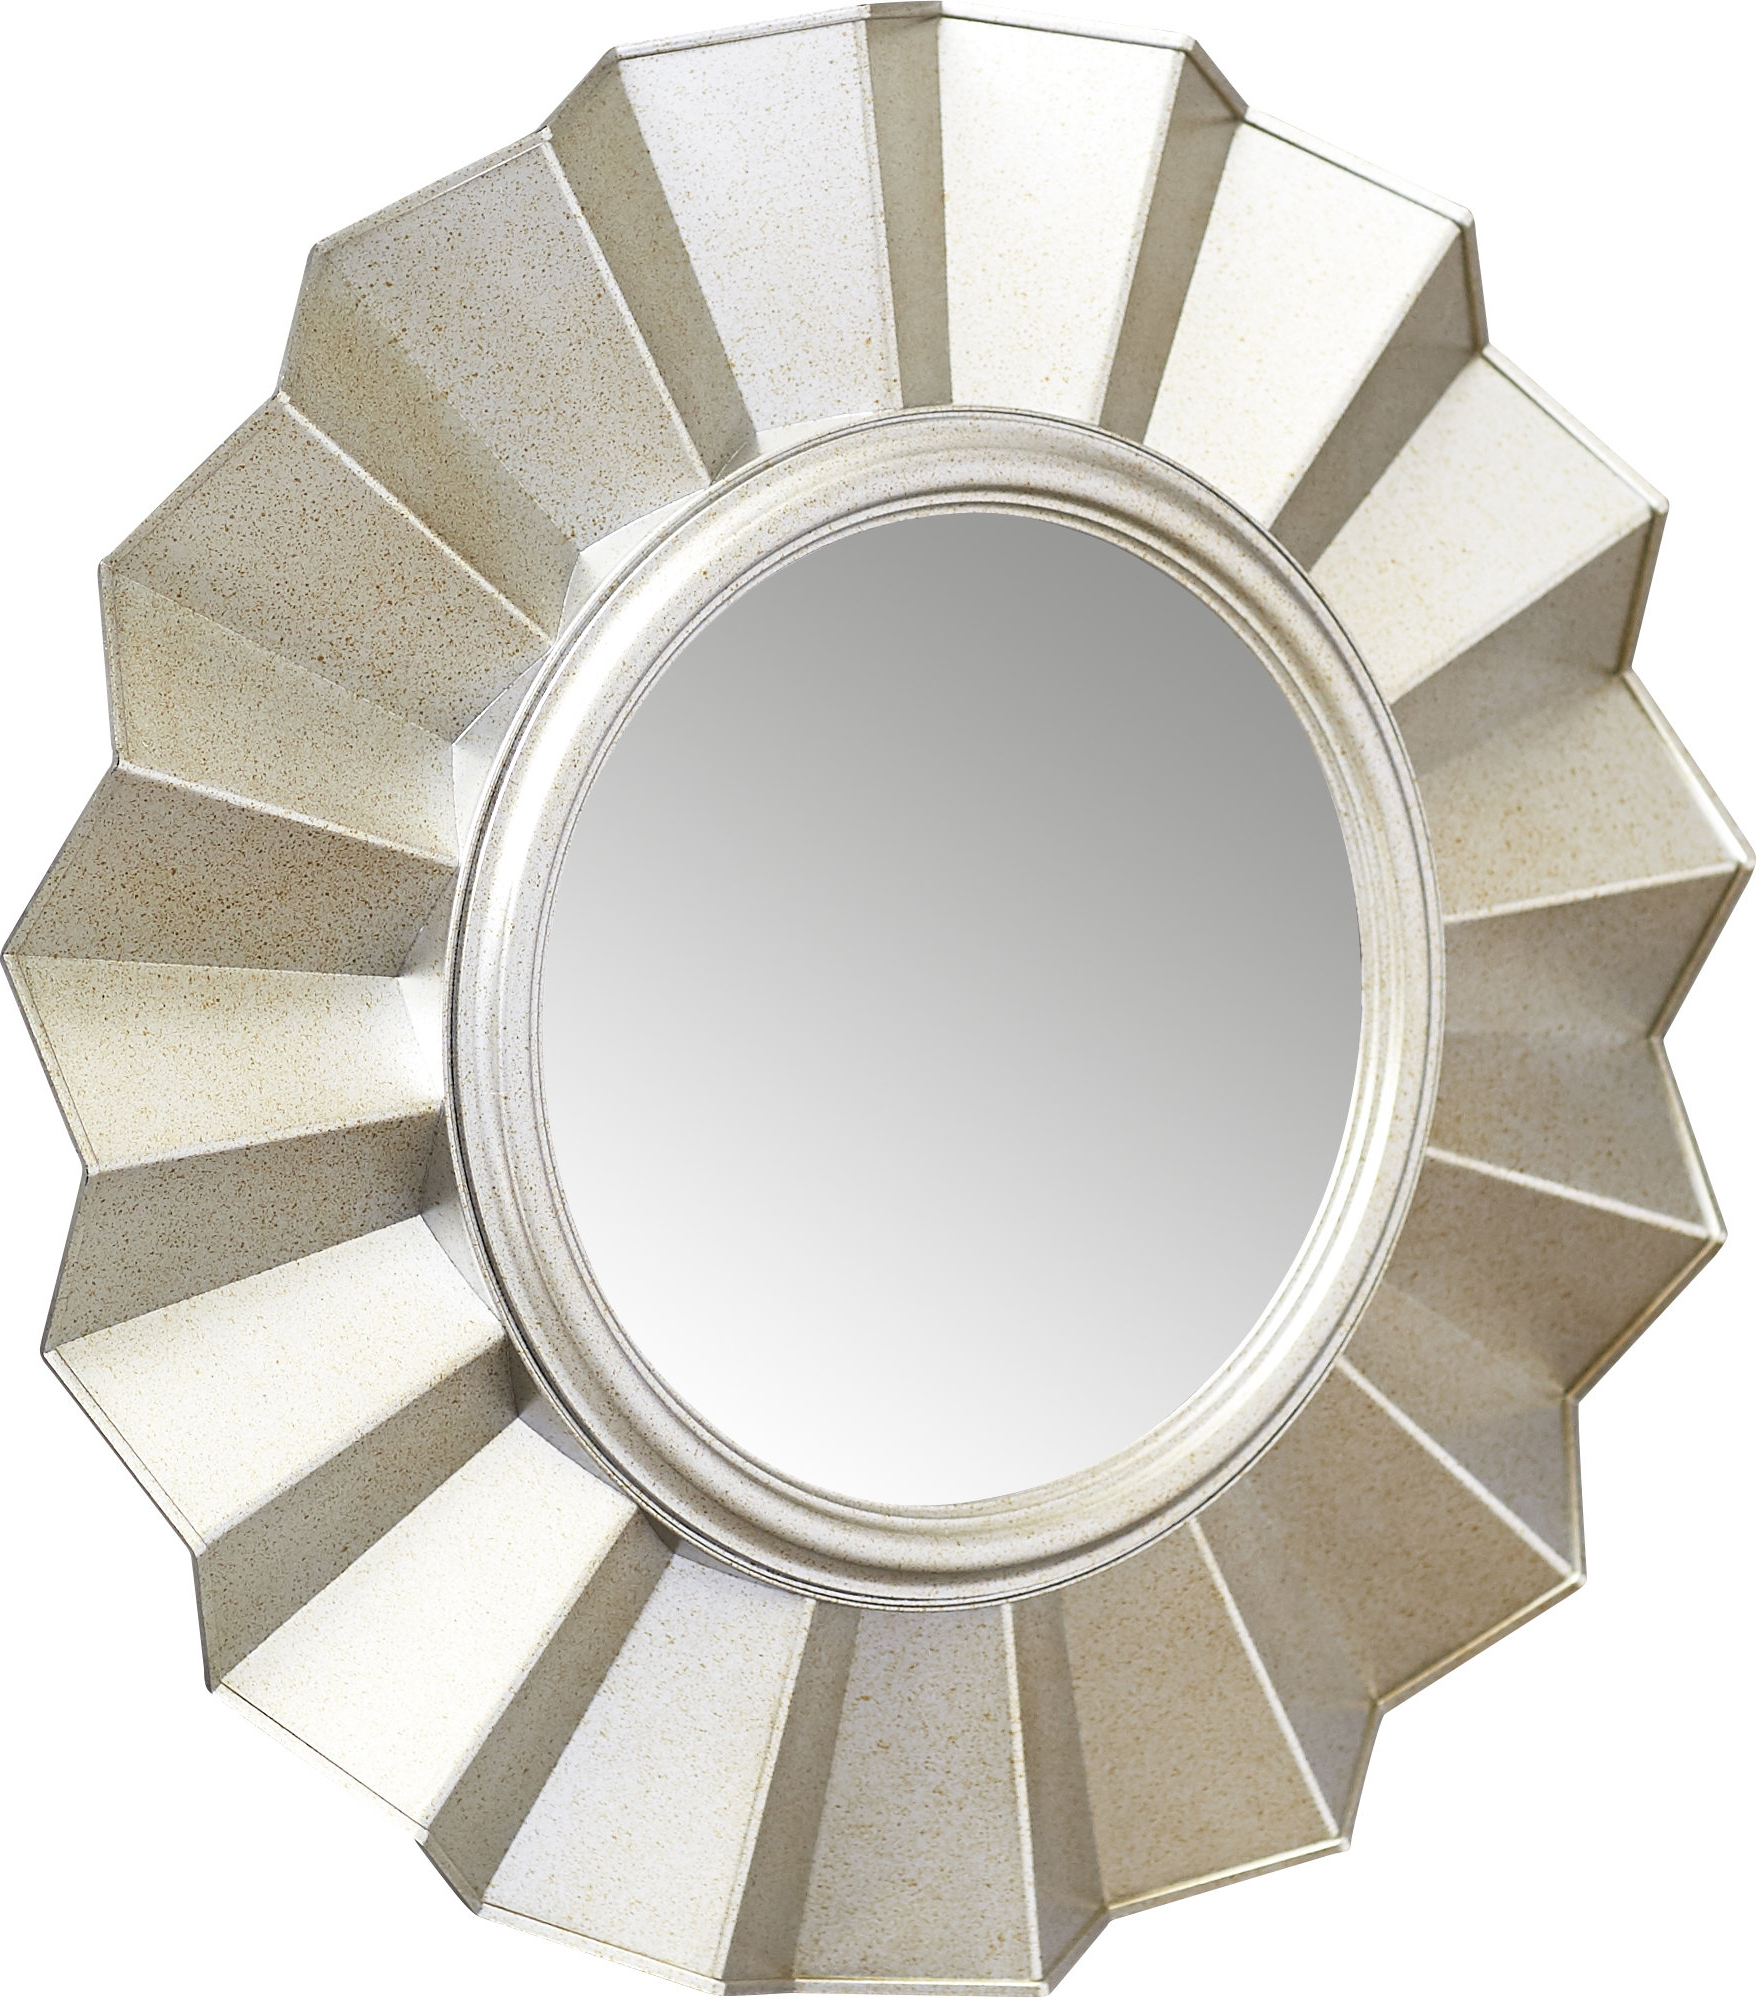 Vertical Round Wall Mirror Regarding 2019 Estrela Modern Sunburst Metal Wall Mirrors (View 19 of 20)